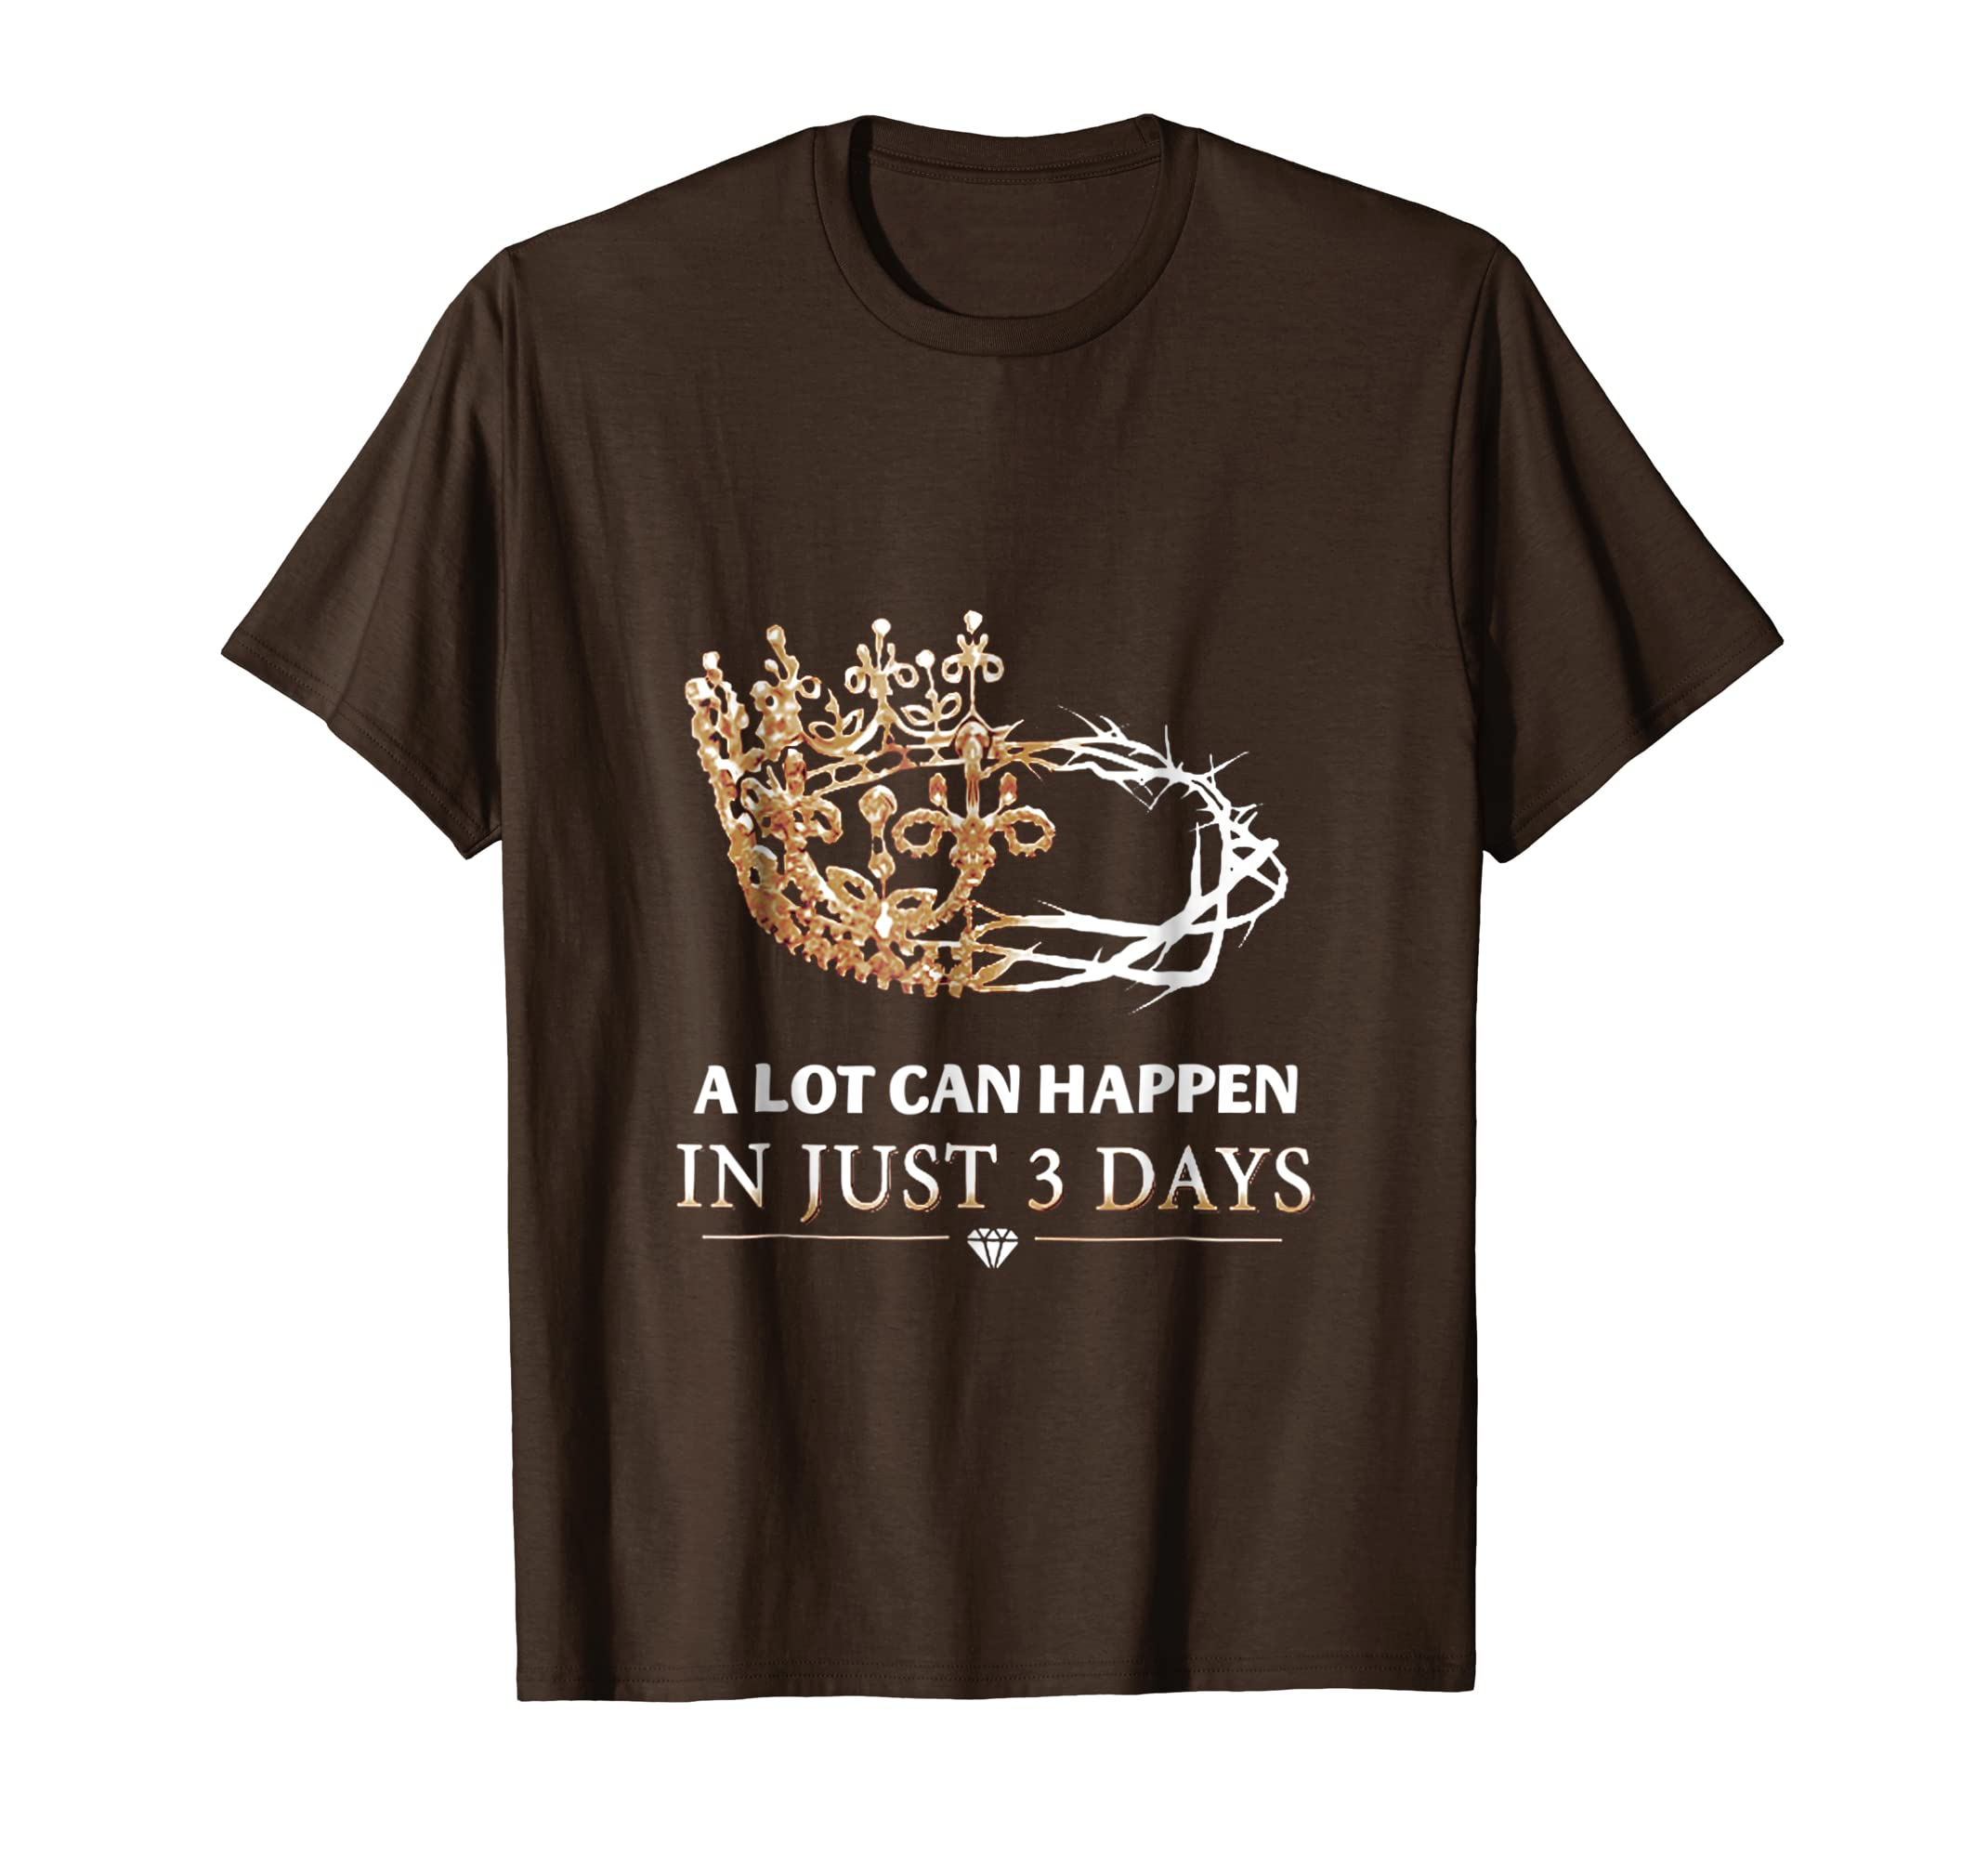 A Lot Can Happen In Just 3 Day T Shirt Christian Shirt-Colonhue